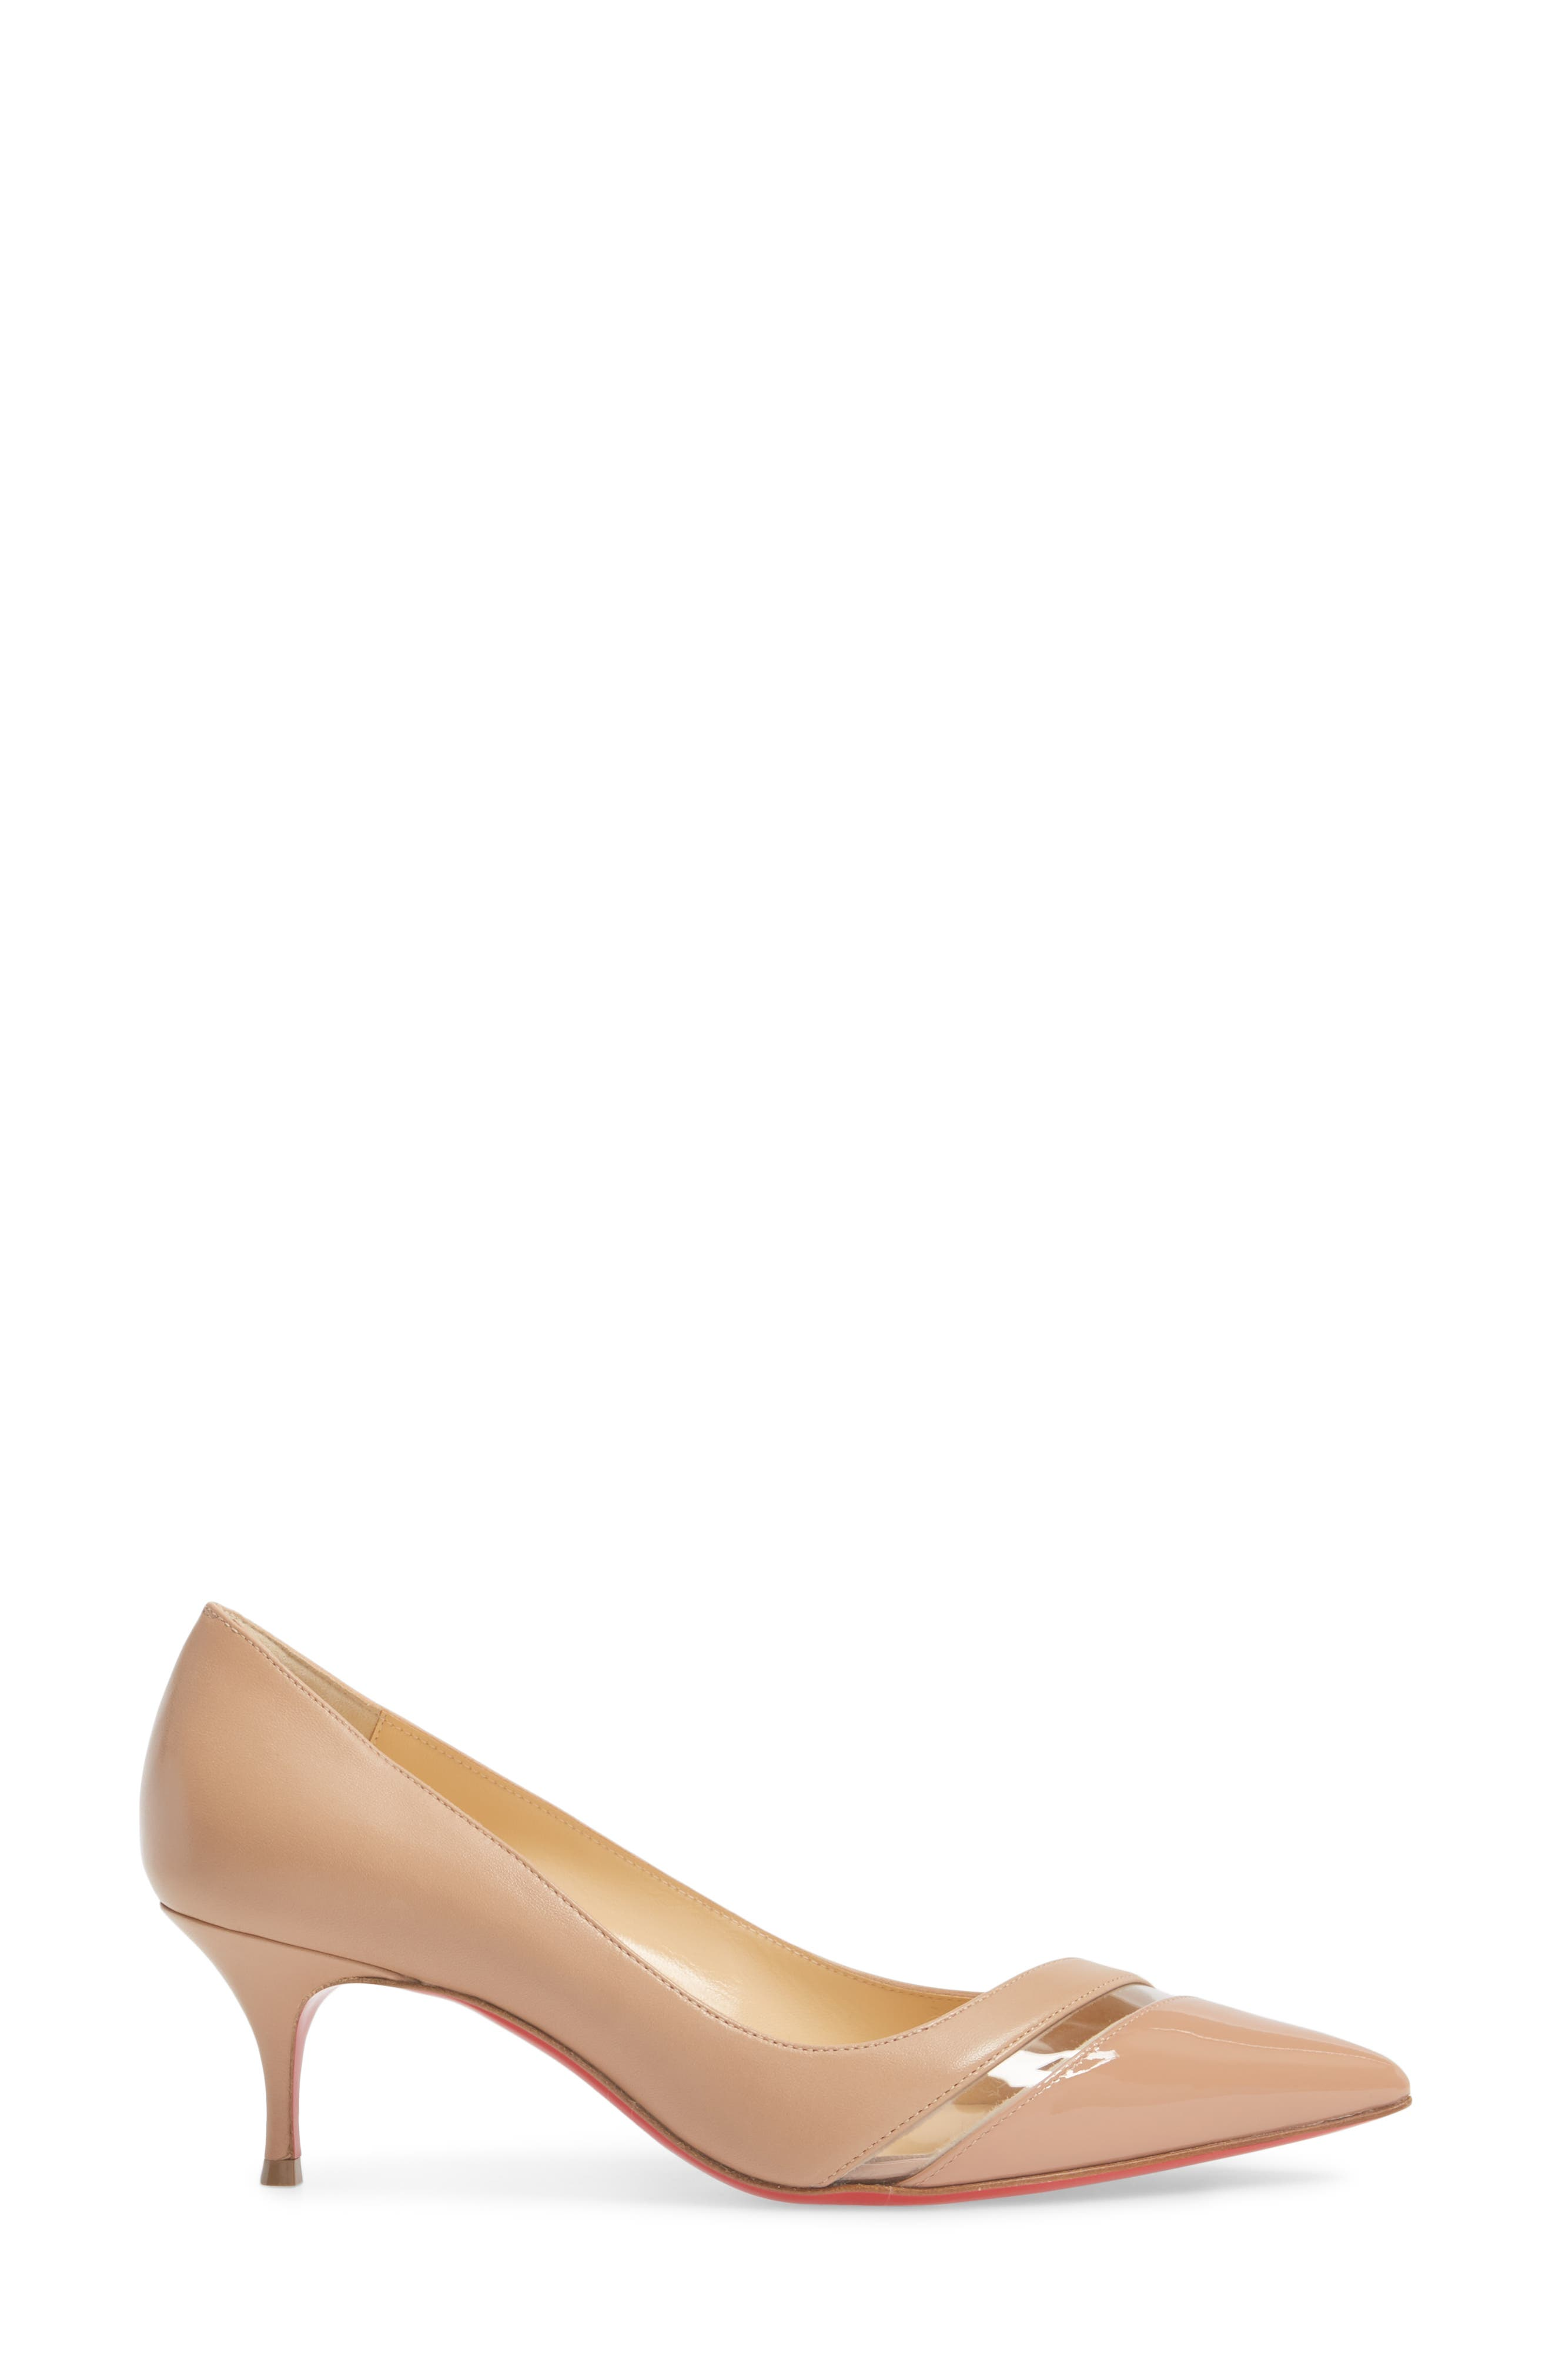 premium selection a6049 62a2a 17th Floor Pointy Toe Pump   Review Home Decor